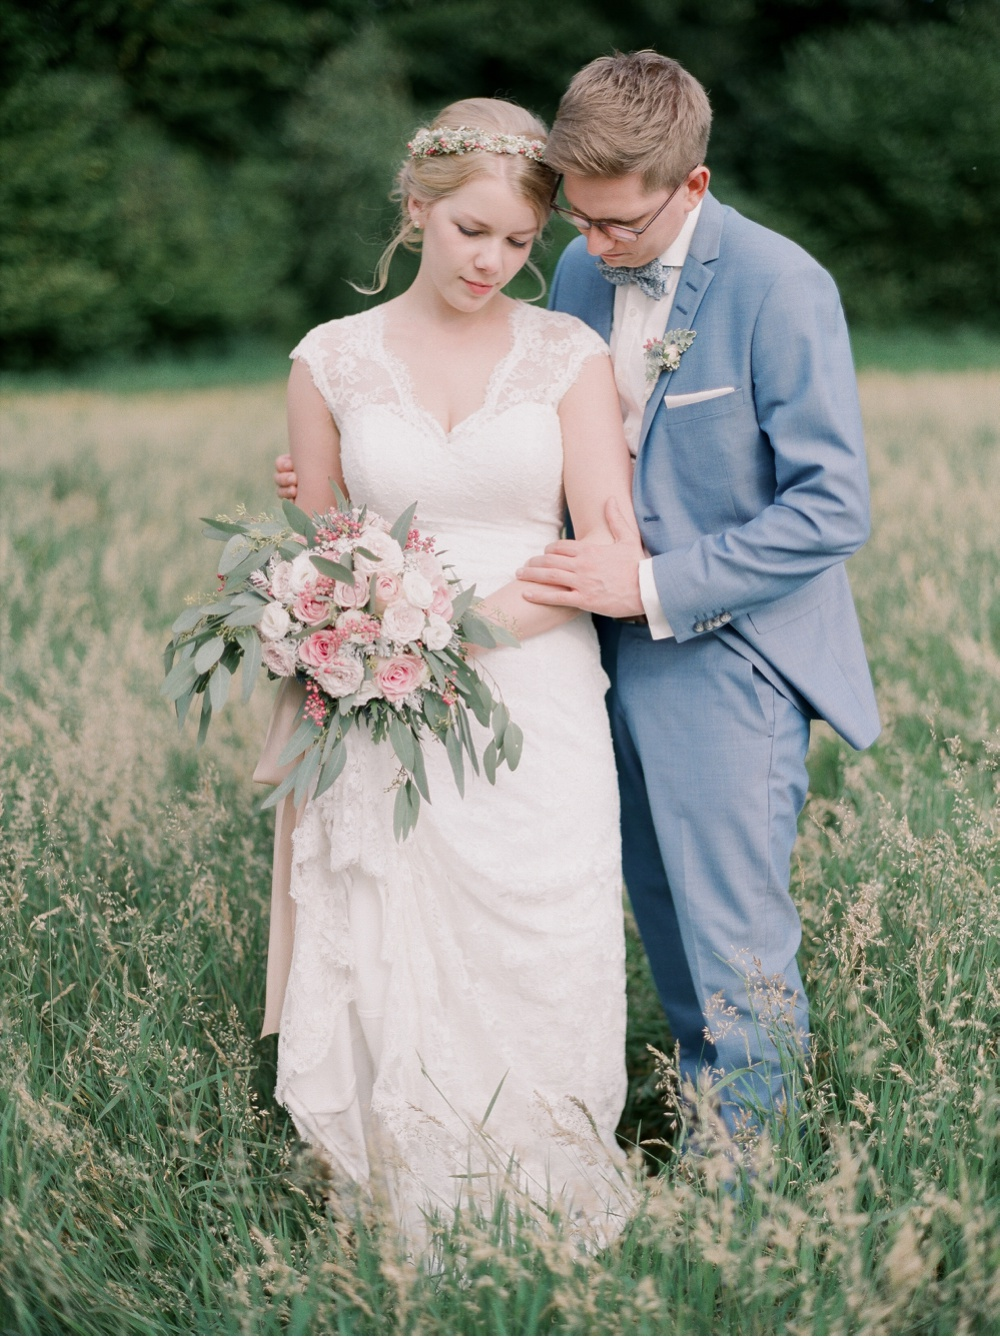 Paris_Provence_Destination_Wedding_Photographer©MadalinaSheldon_0063.jpg